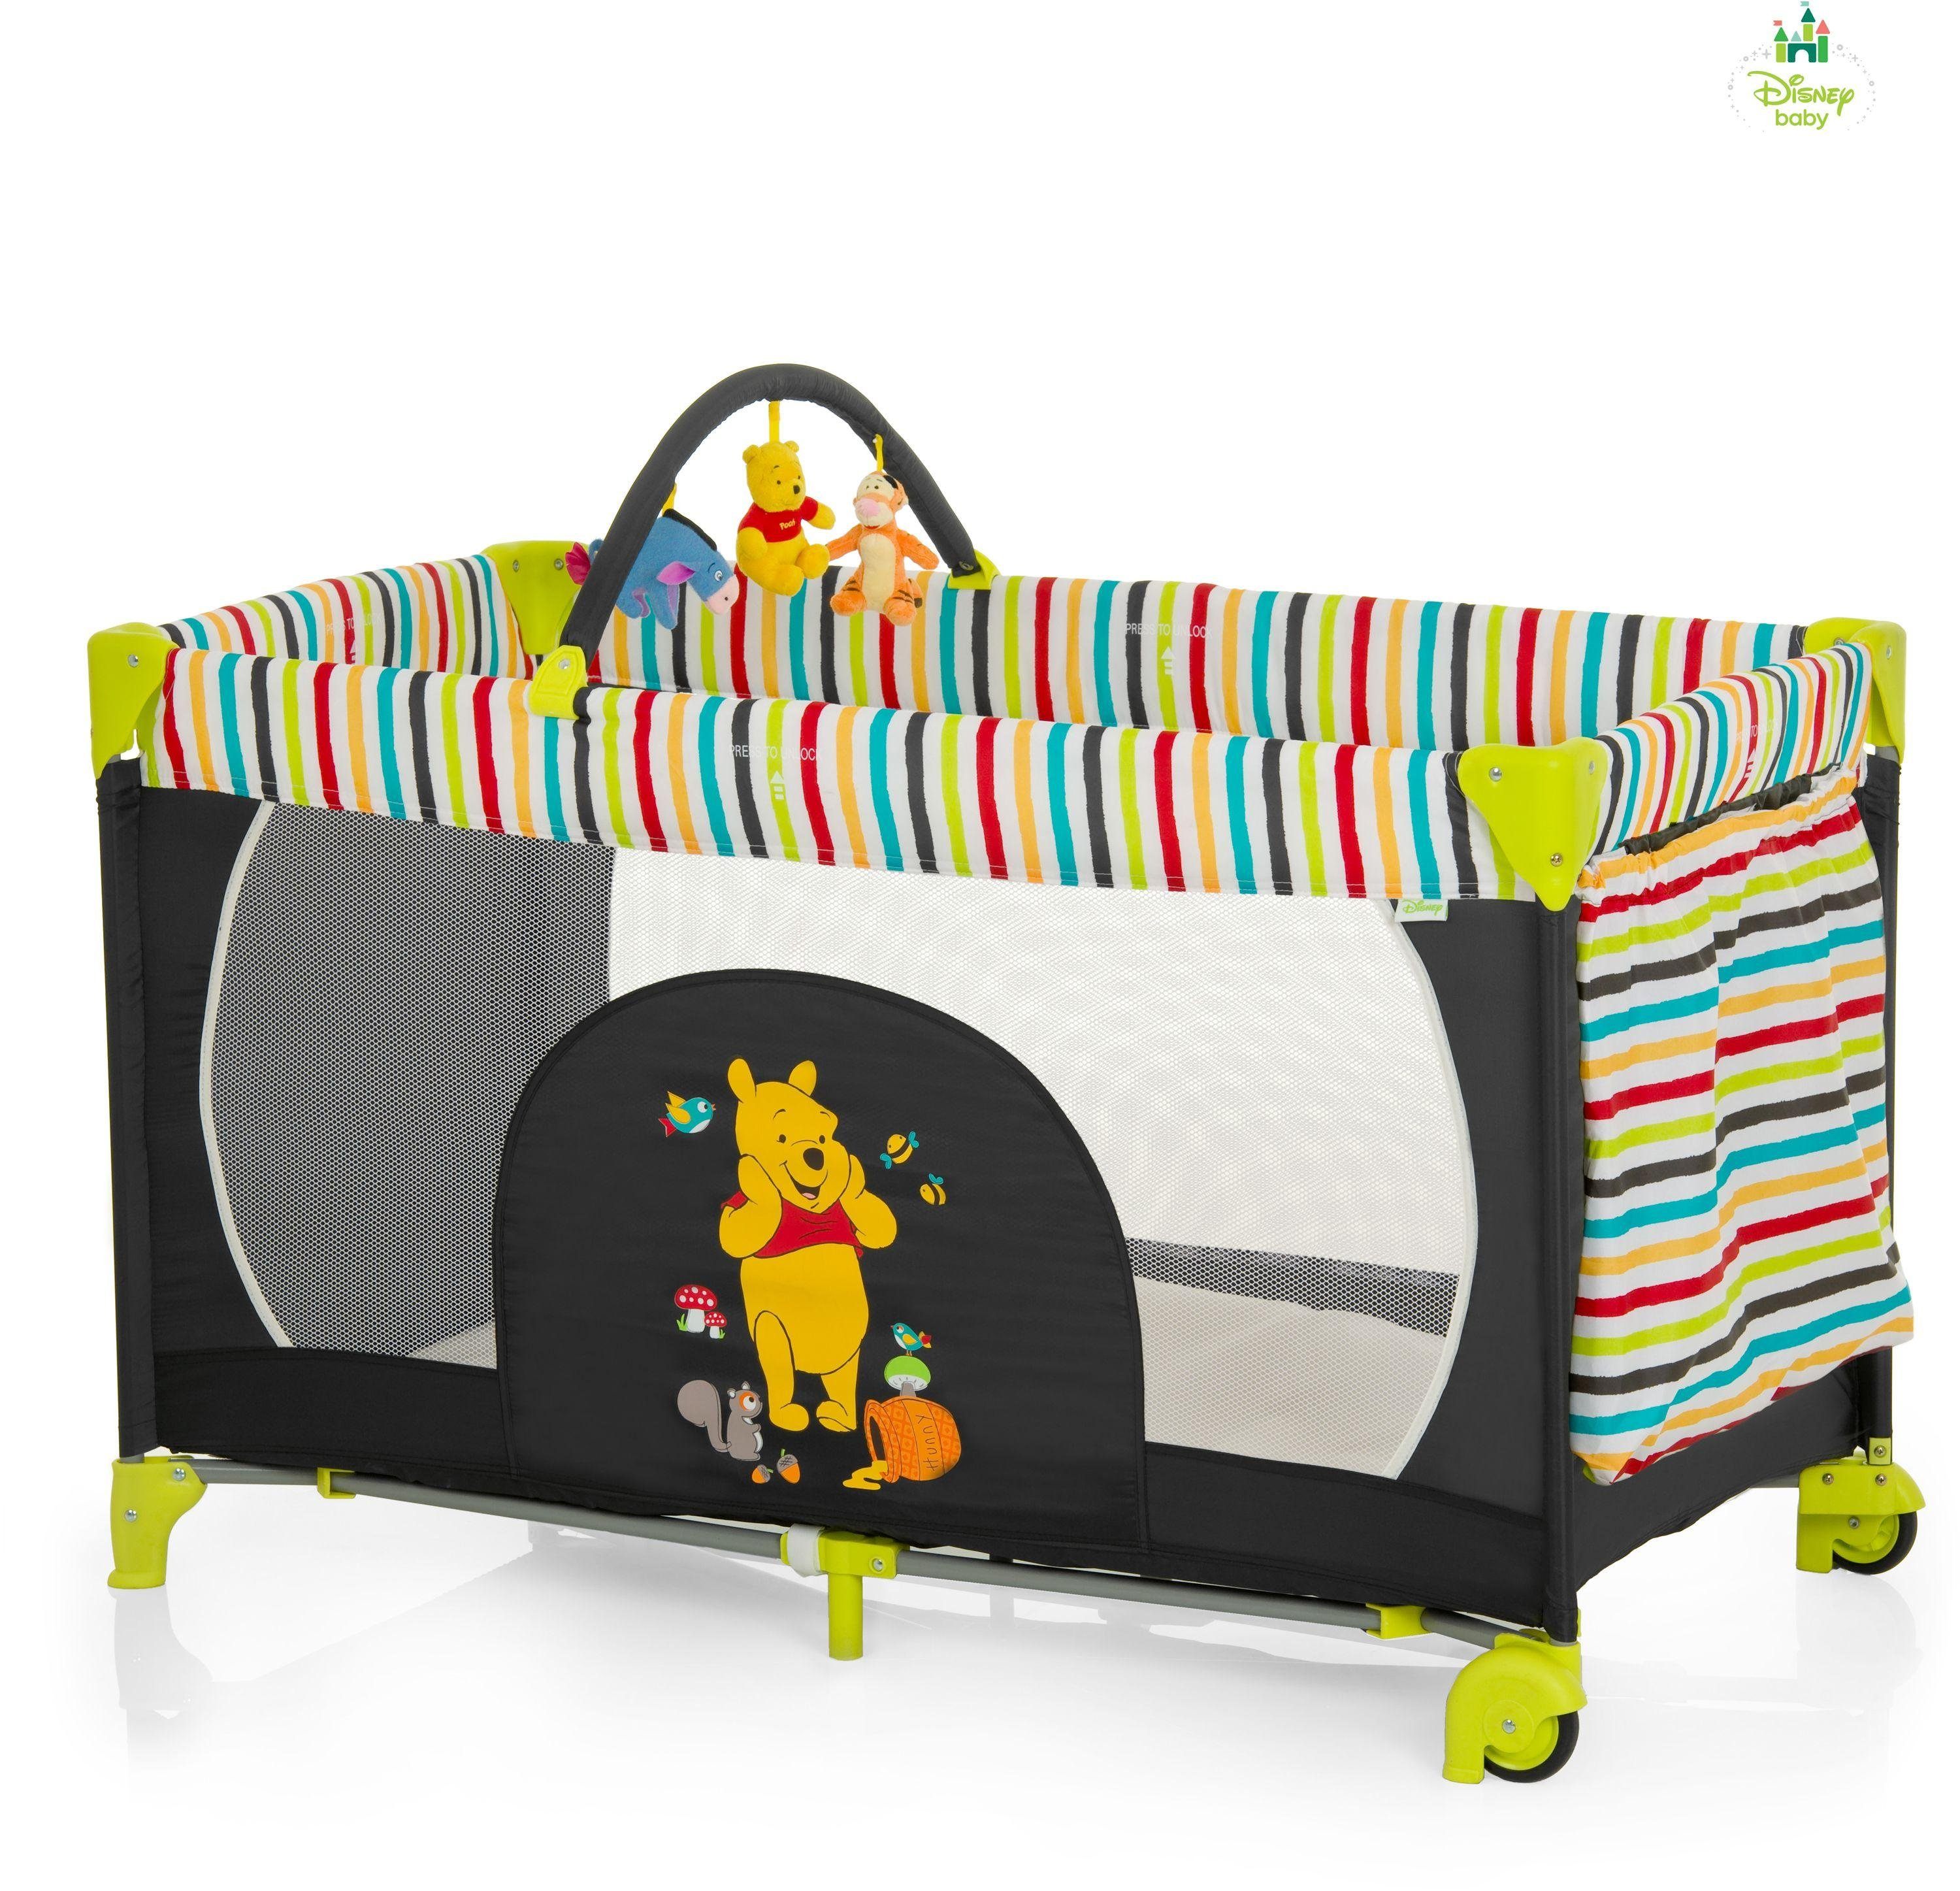 Image of Disney Baby Dream'n Play Travel Cot - Pooh Tidy Time.